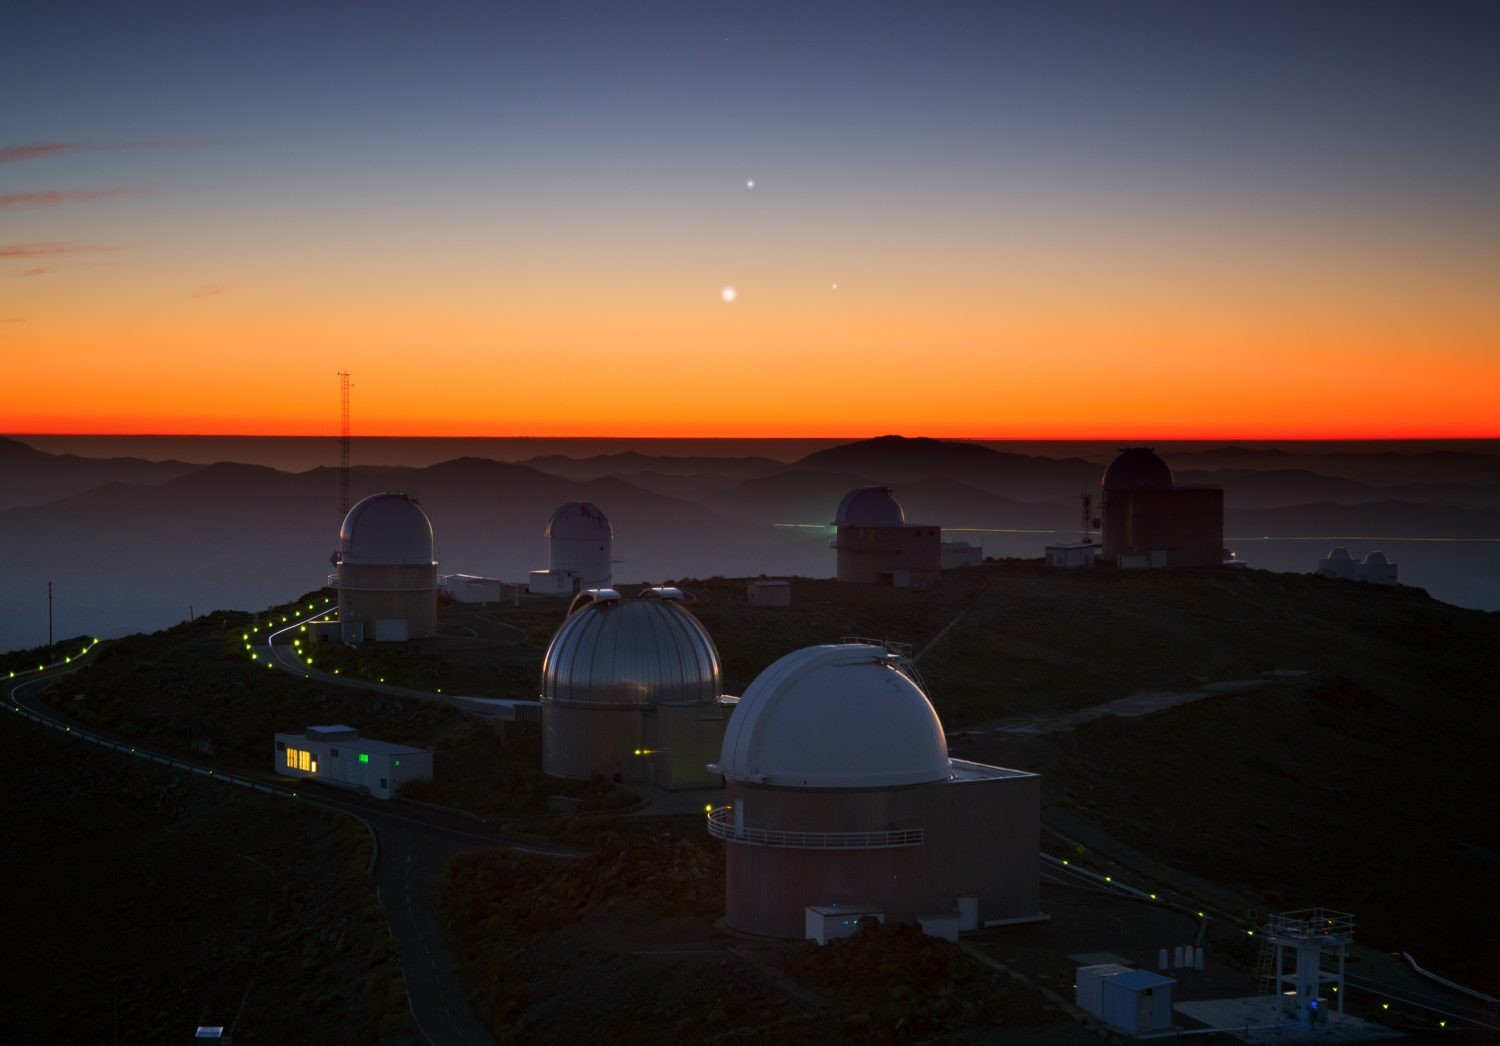 The total solar eclipse will be viewable from ESO's La Silla observatory in the Chilean Credit: Y. Beletsky (LCO)/ESO